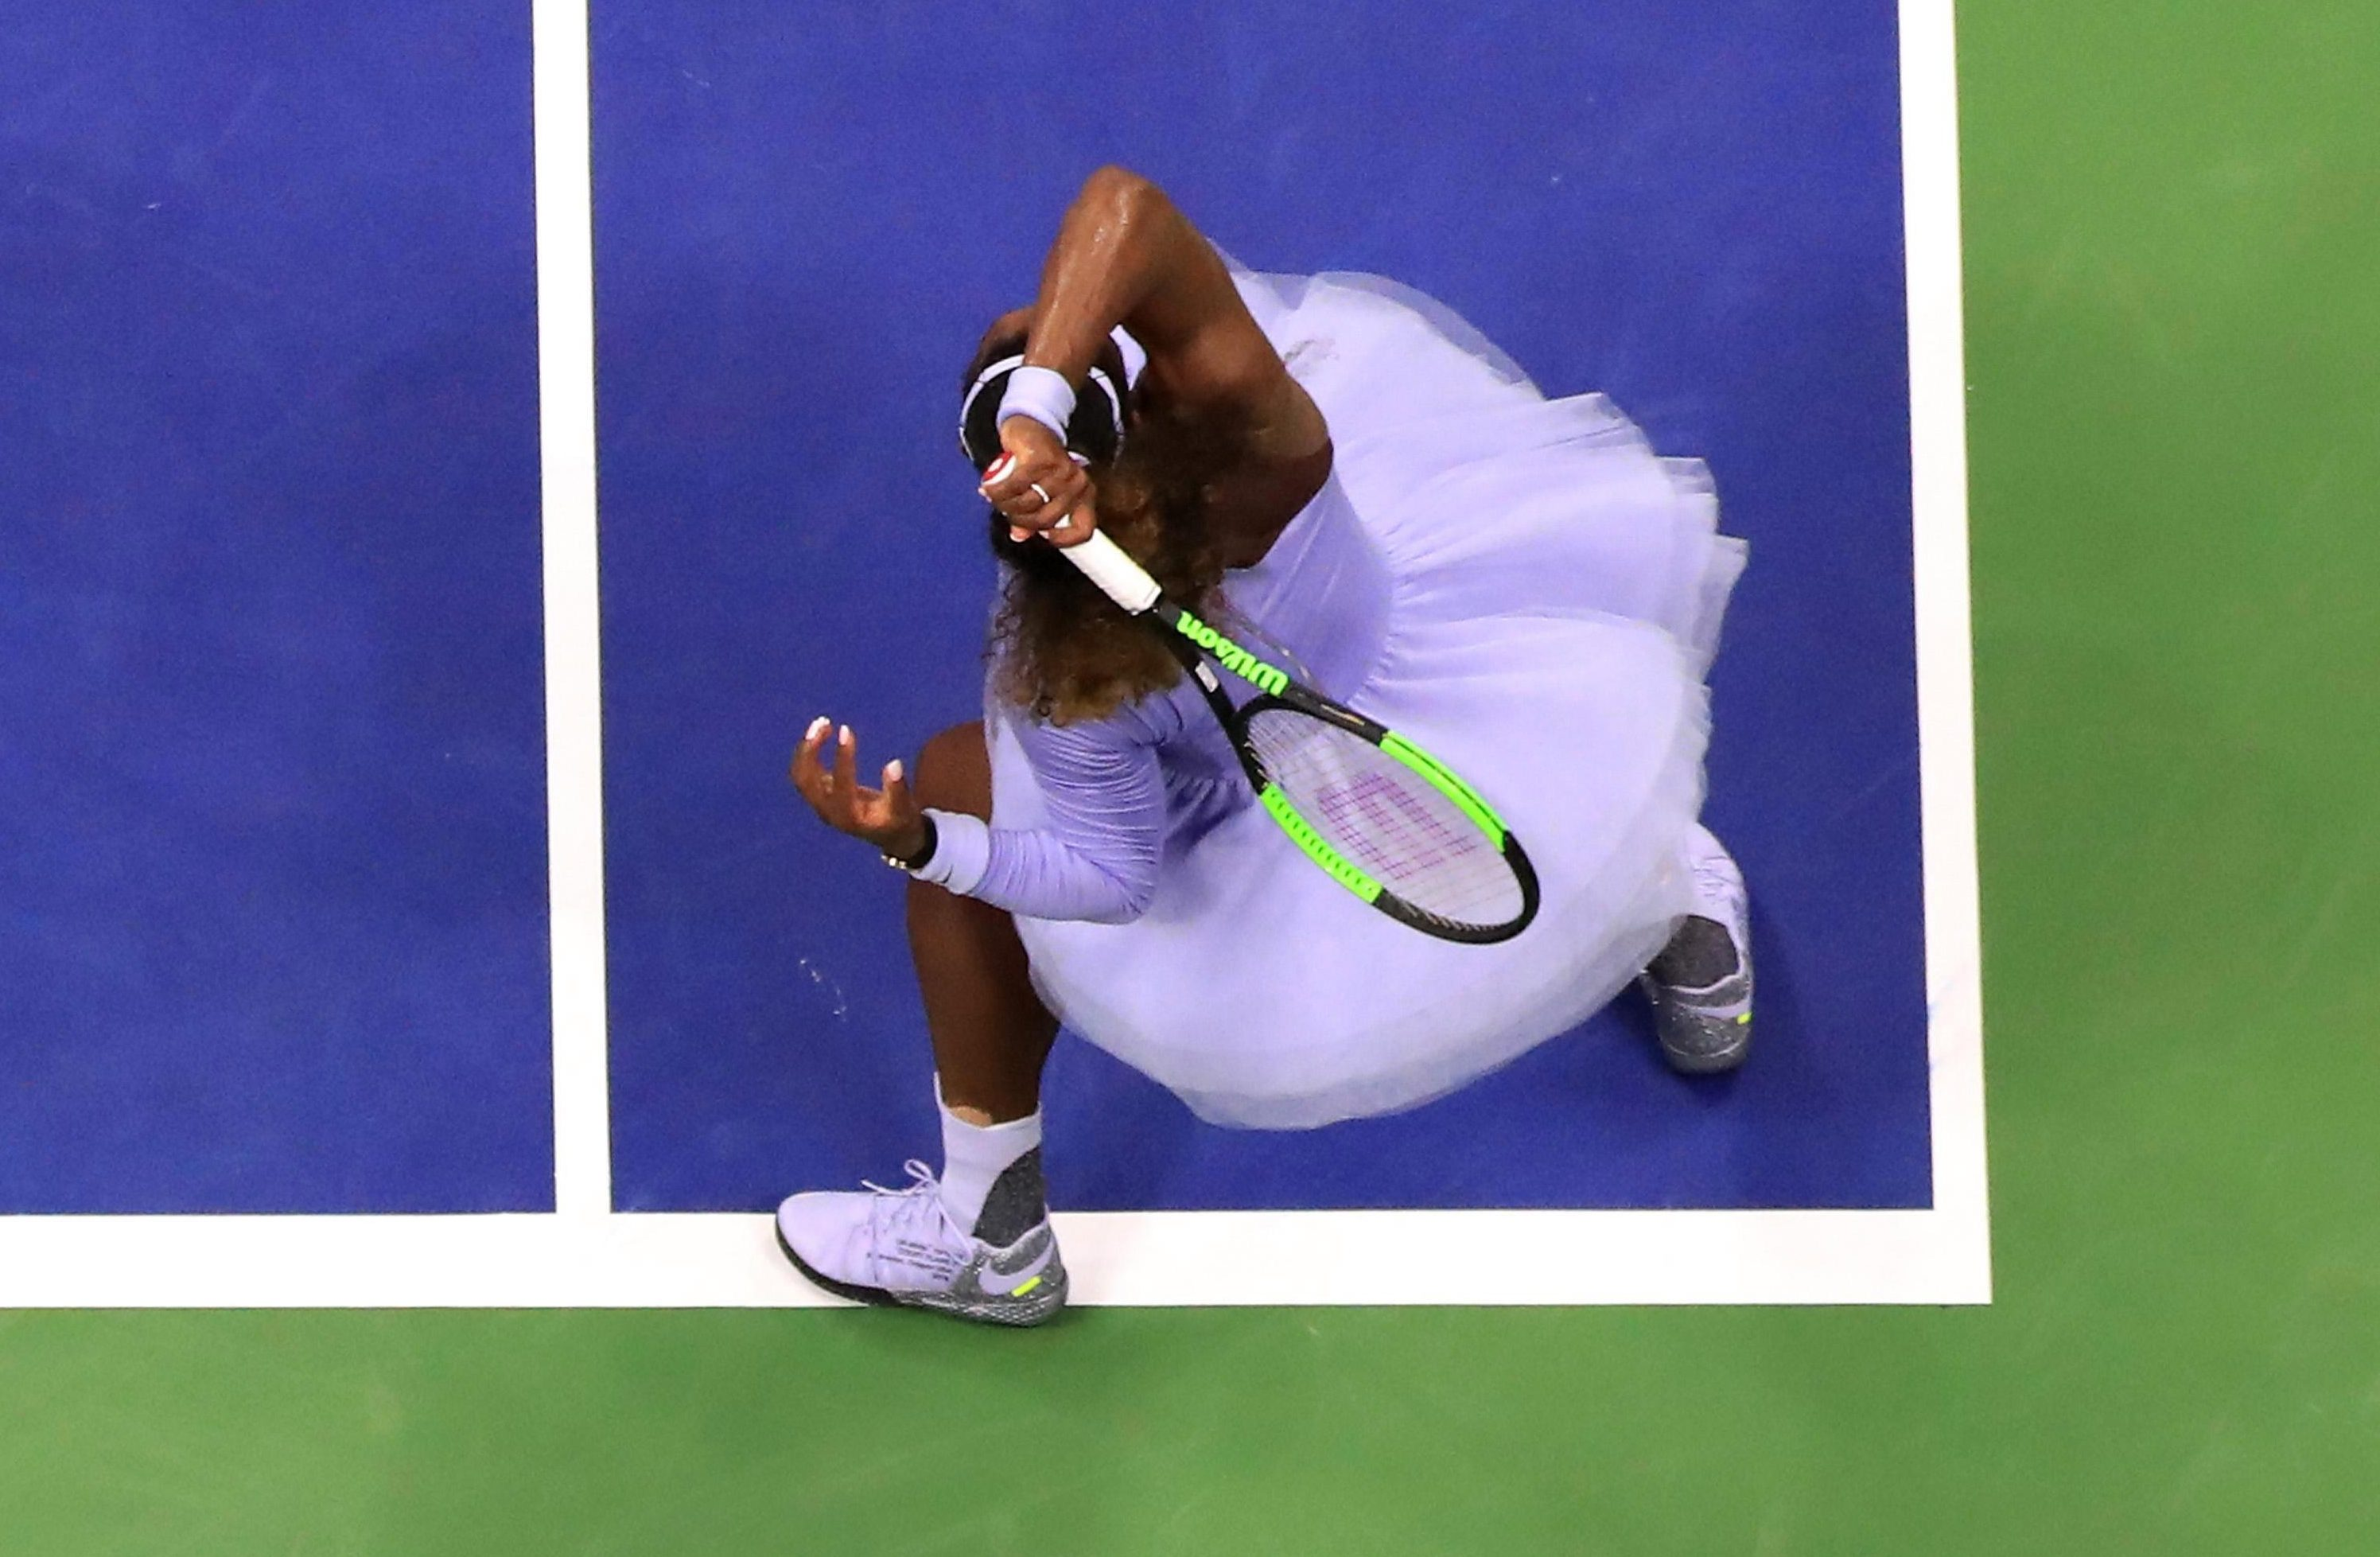 Williams is just one win away from equalling Margaret Court's all-time record of 24 Grand Slam titles